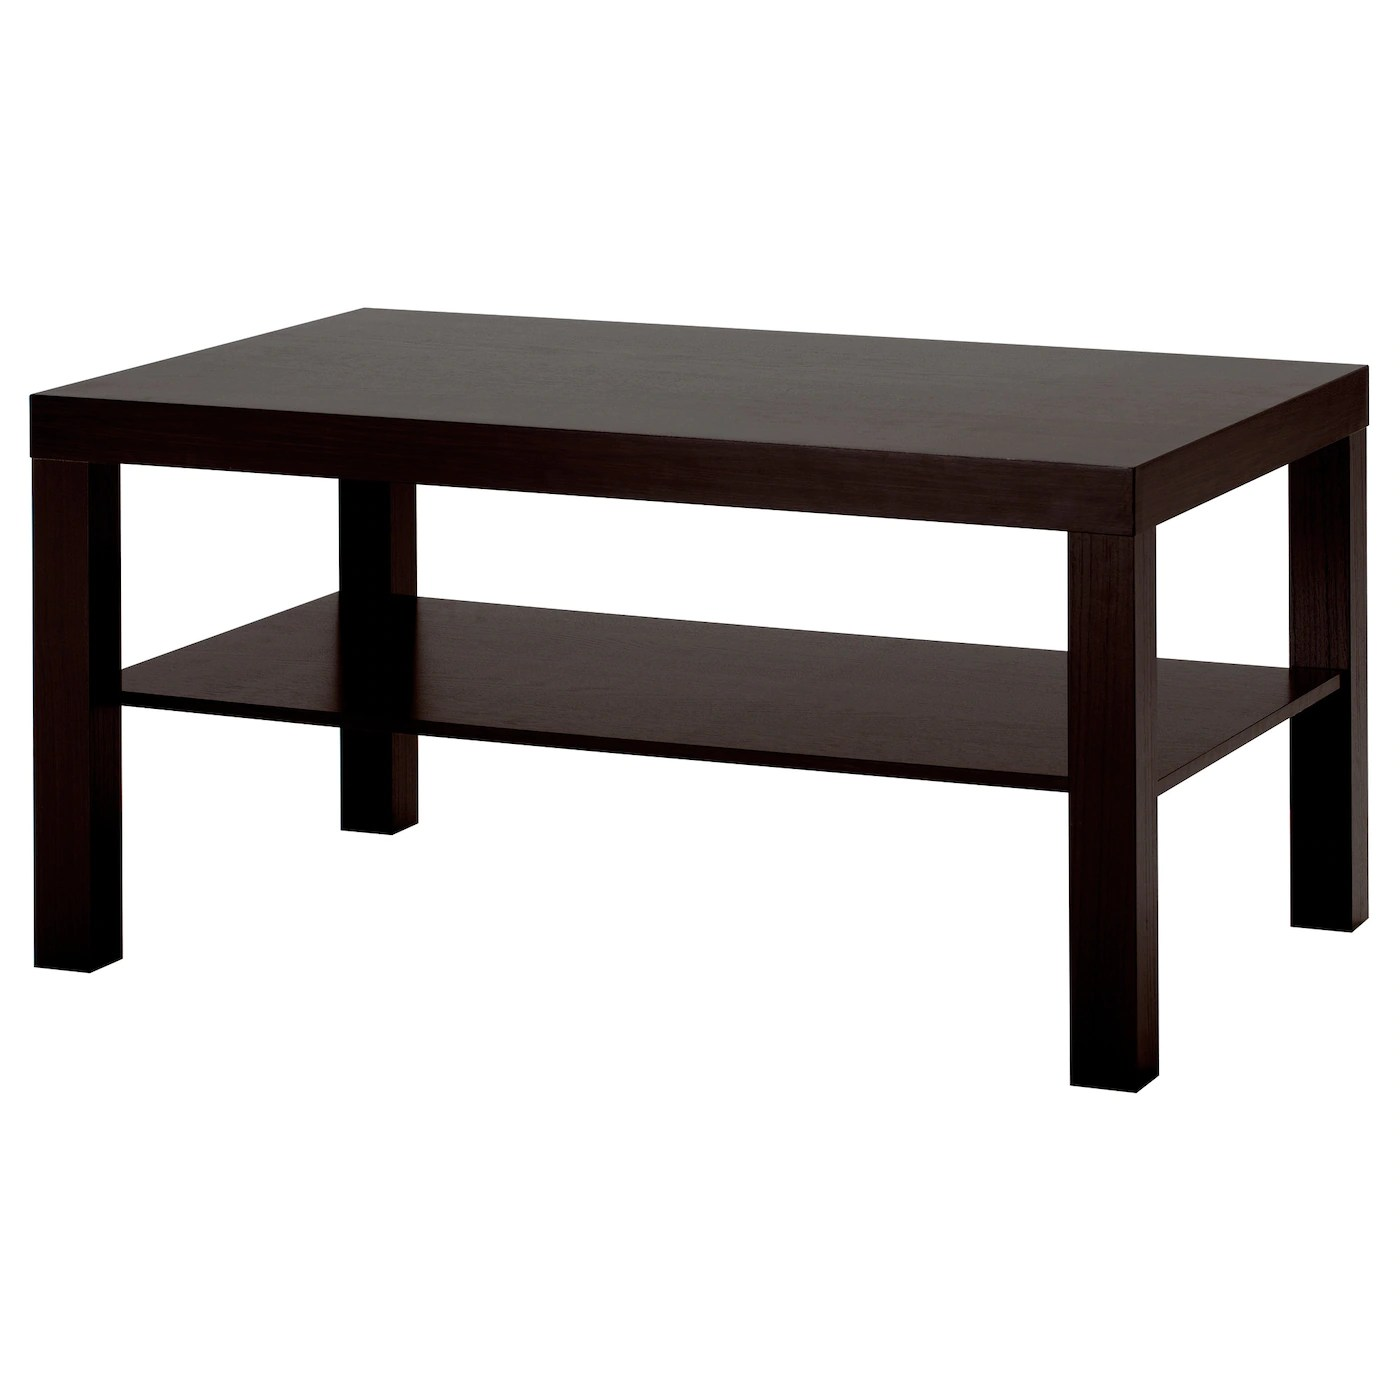 Ikea Lack Coffee Table Square